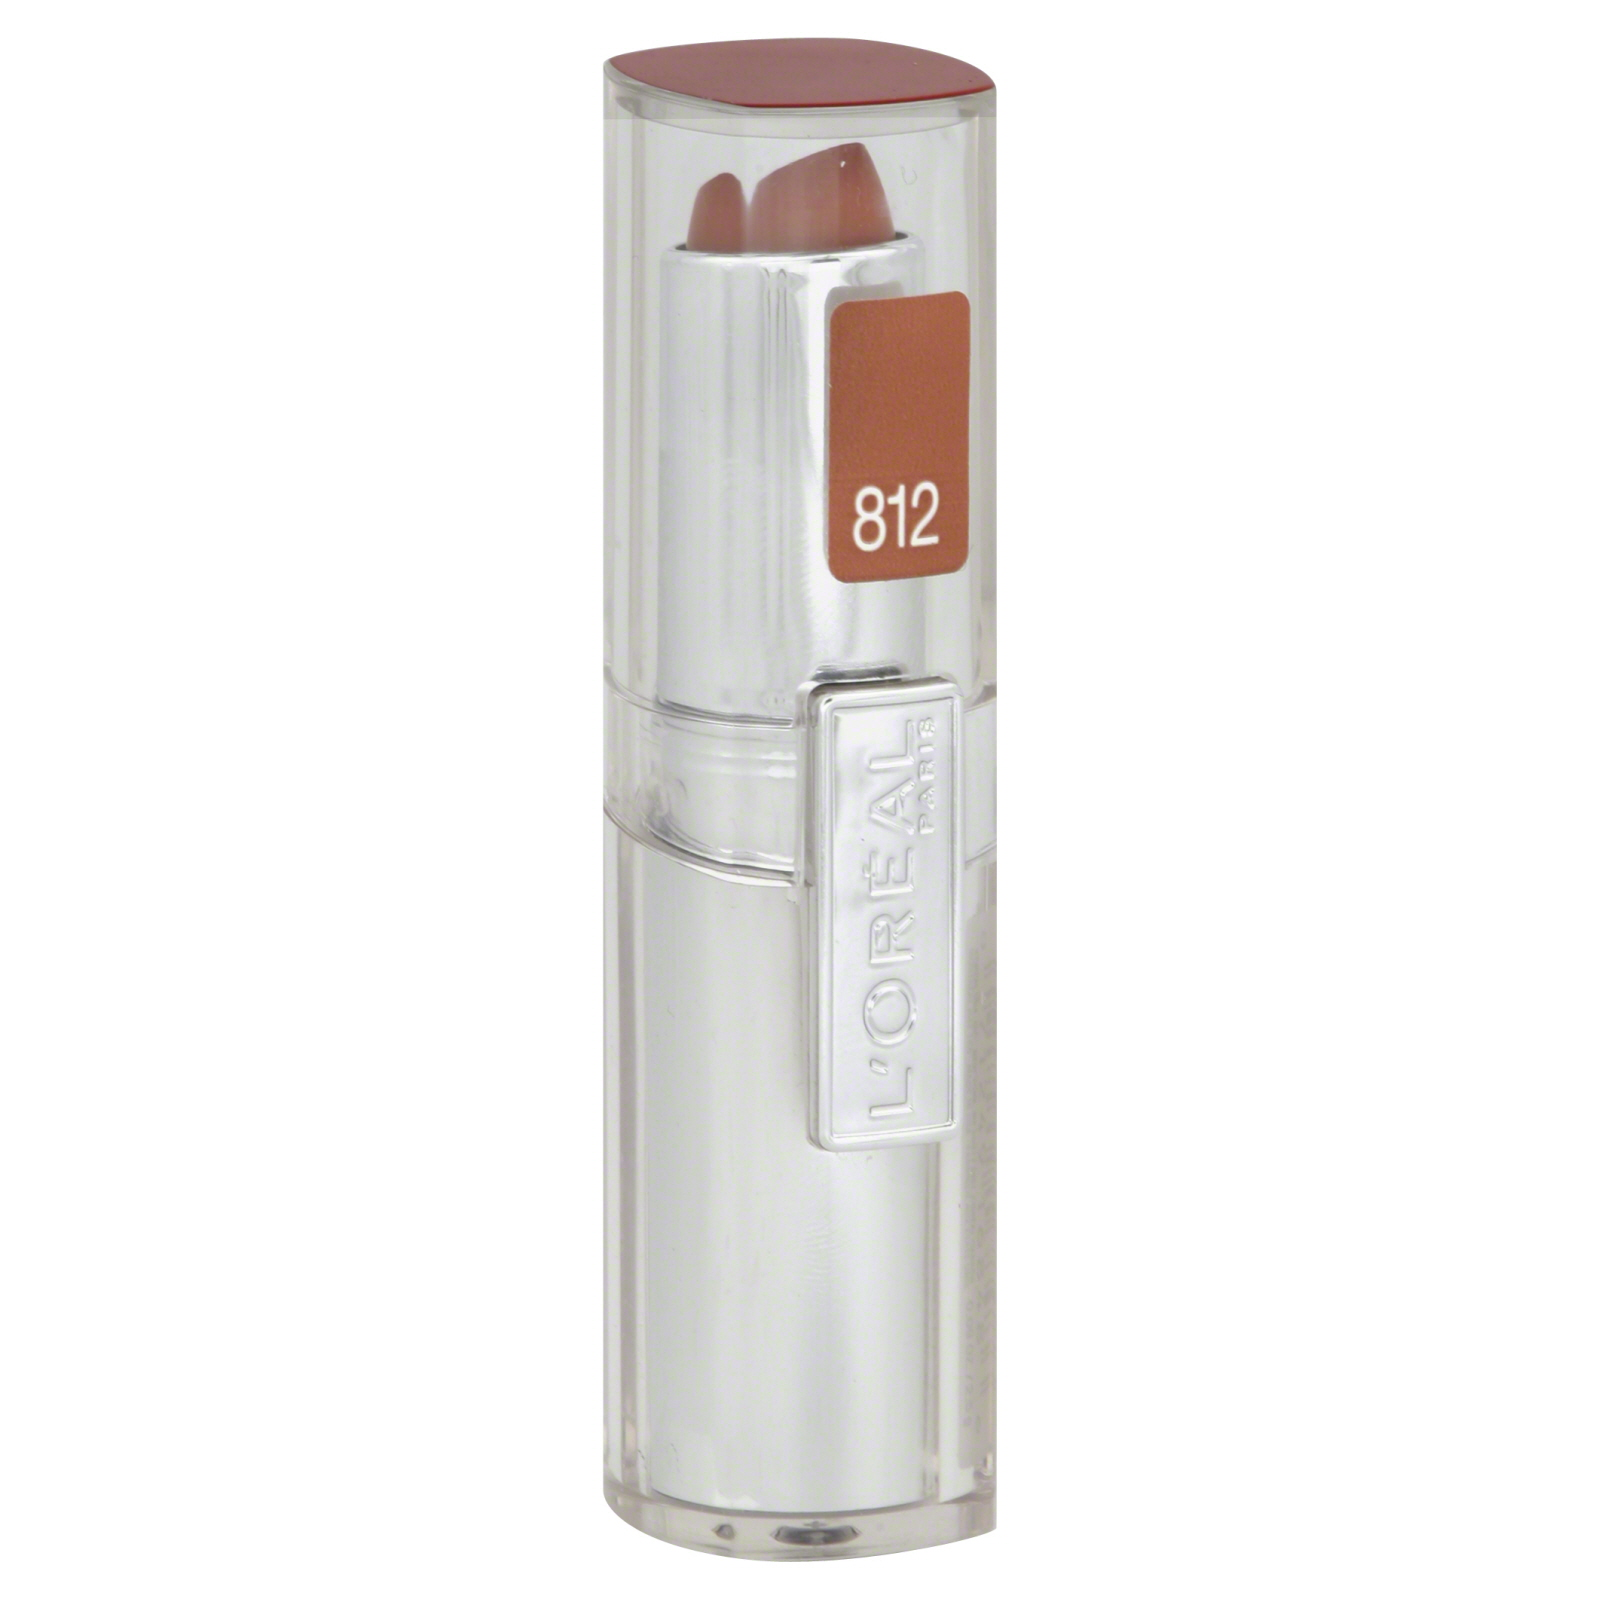 Infallible Lipstick, Opulent Organza 812, 0.09 oz (2.5 g)                                                                        at mygofer.com